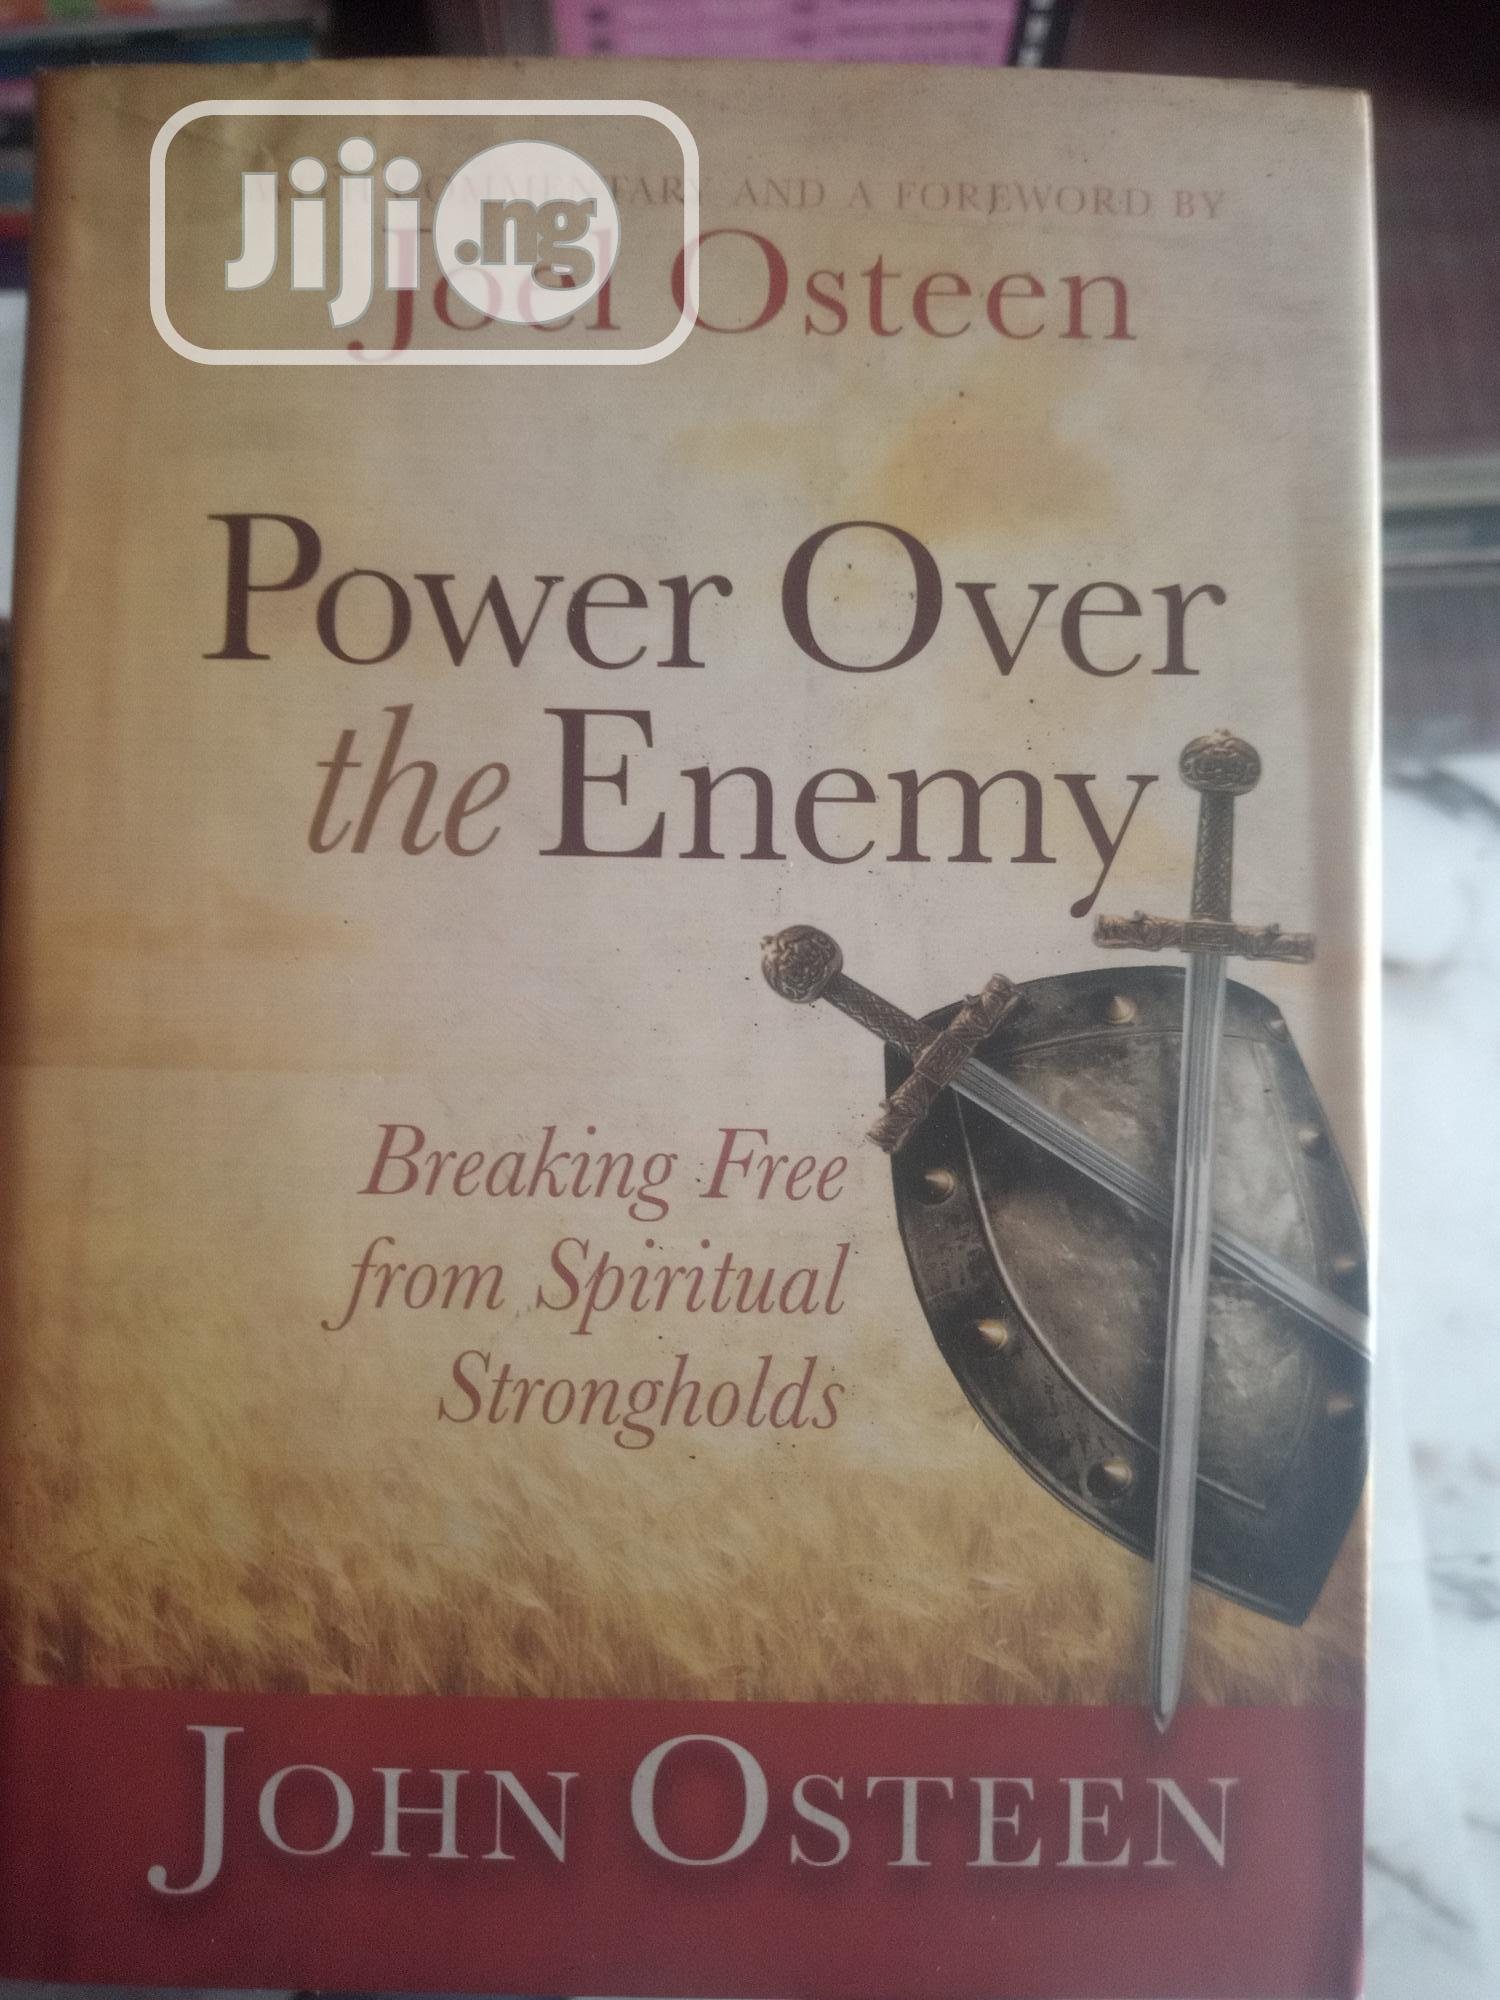 The Power Over Enemy